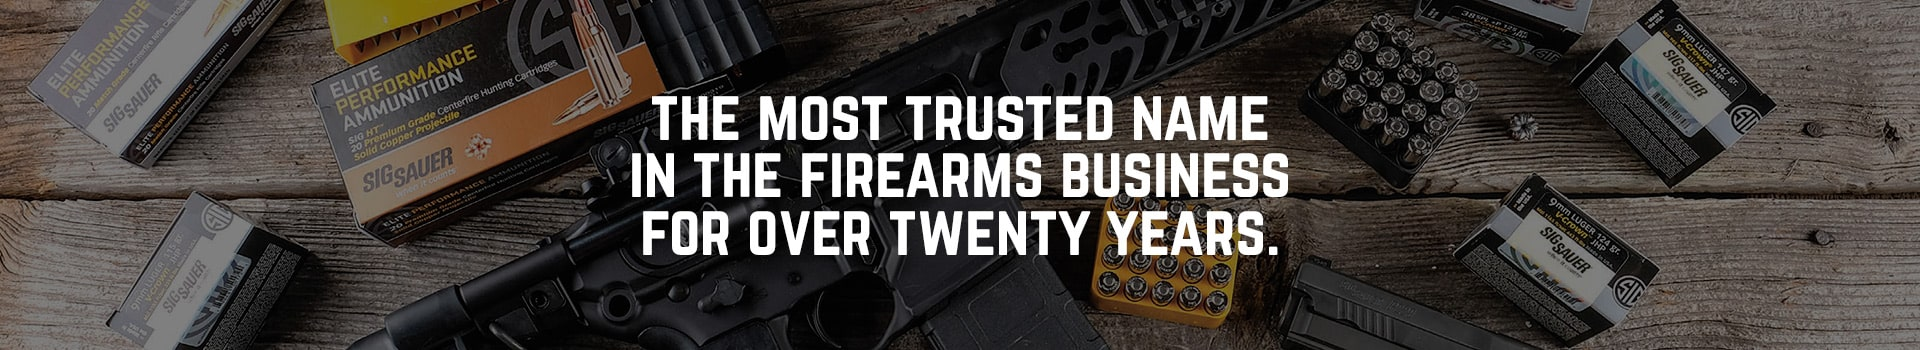 The most trusted name in firearms for over twenty years.